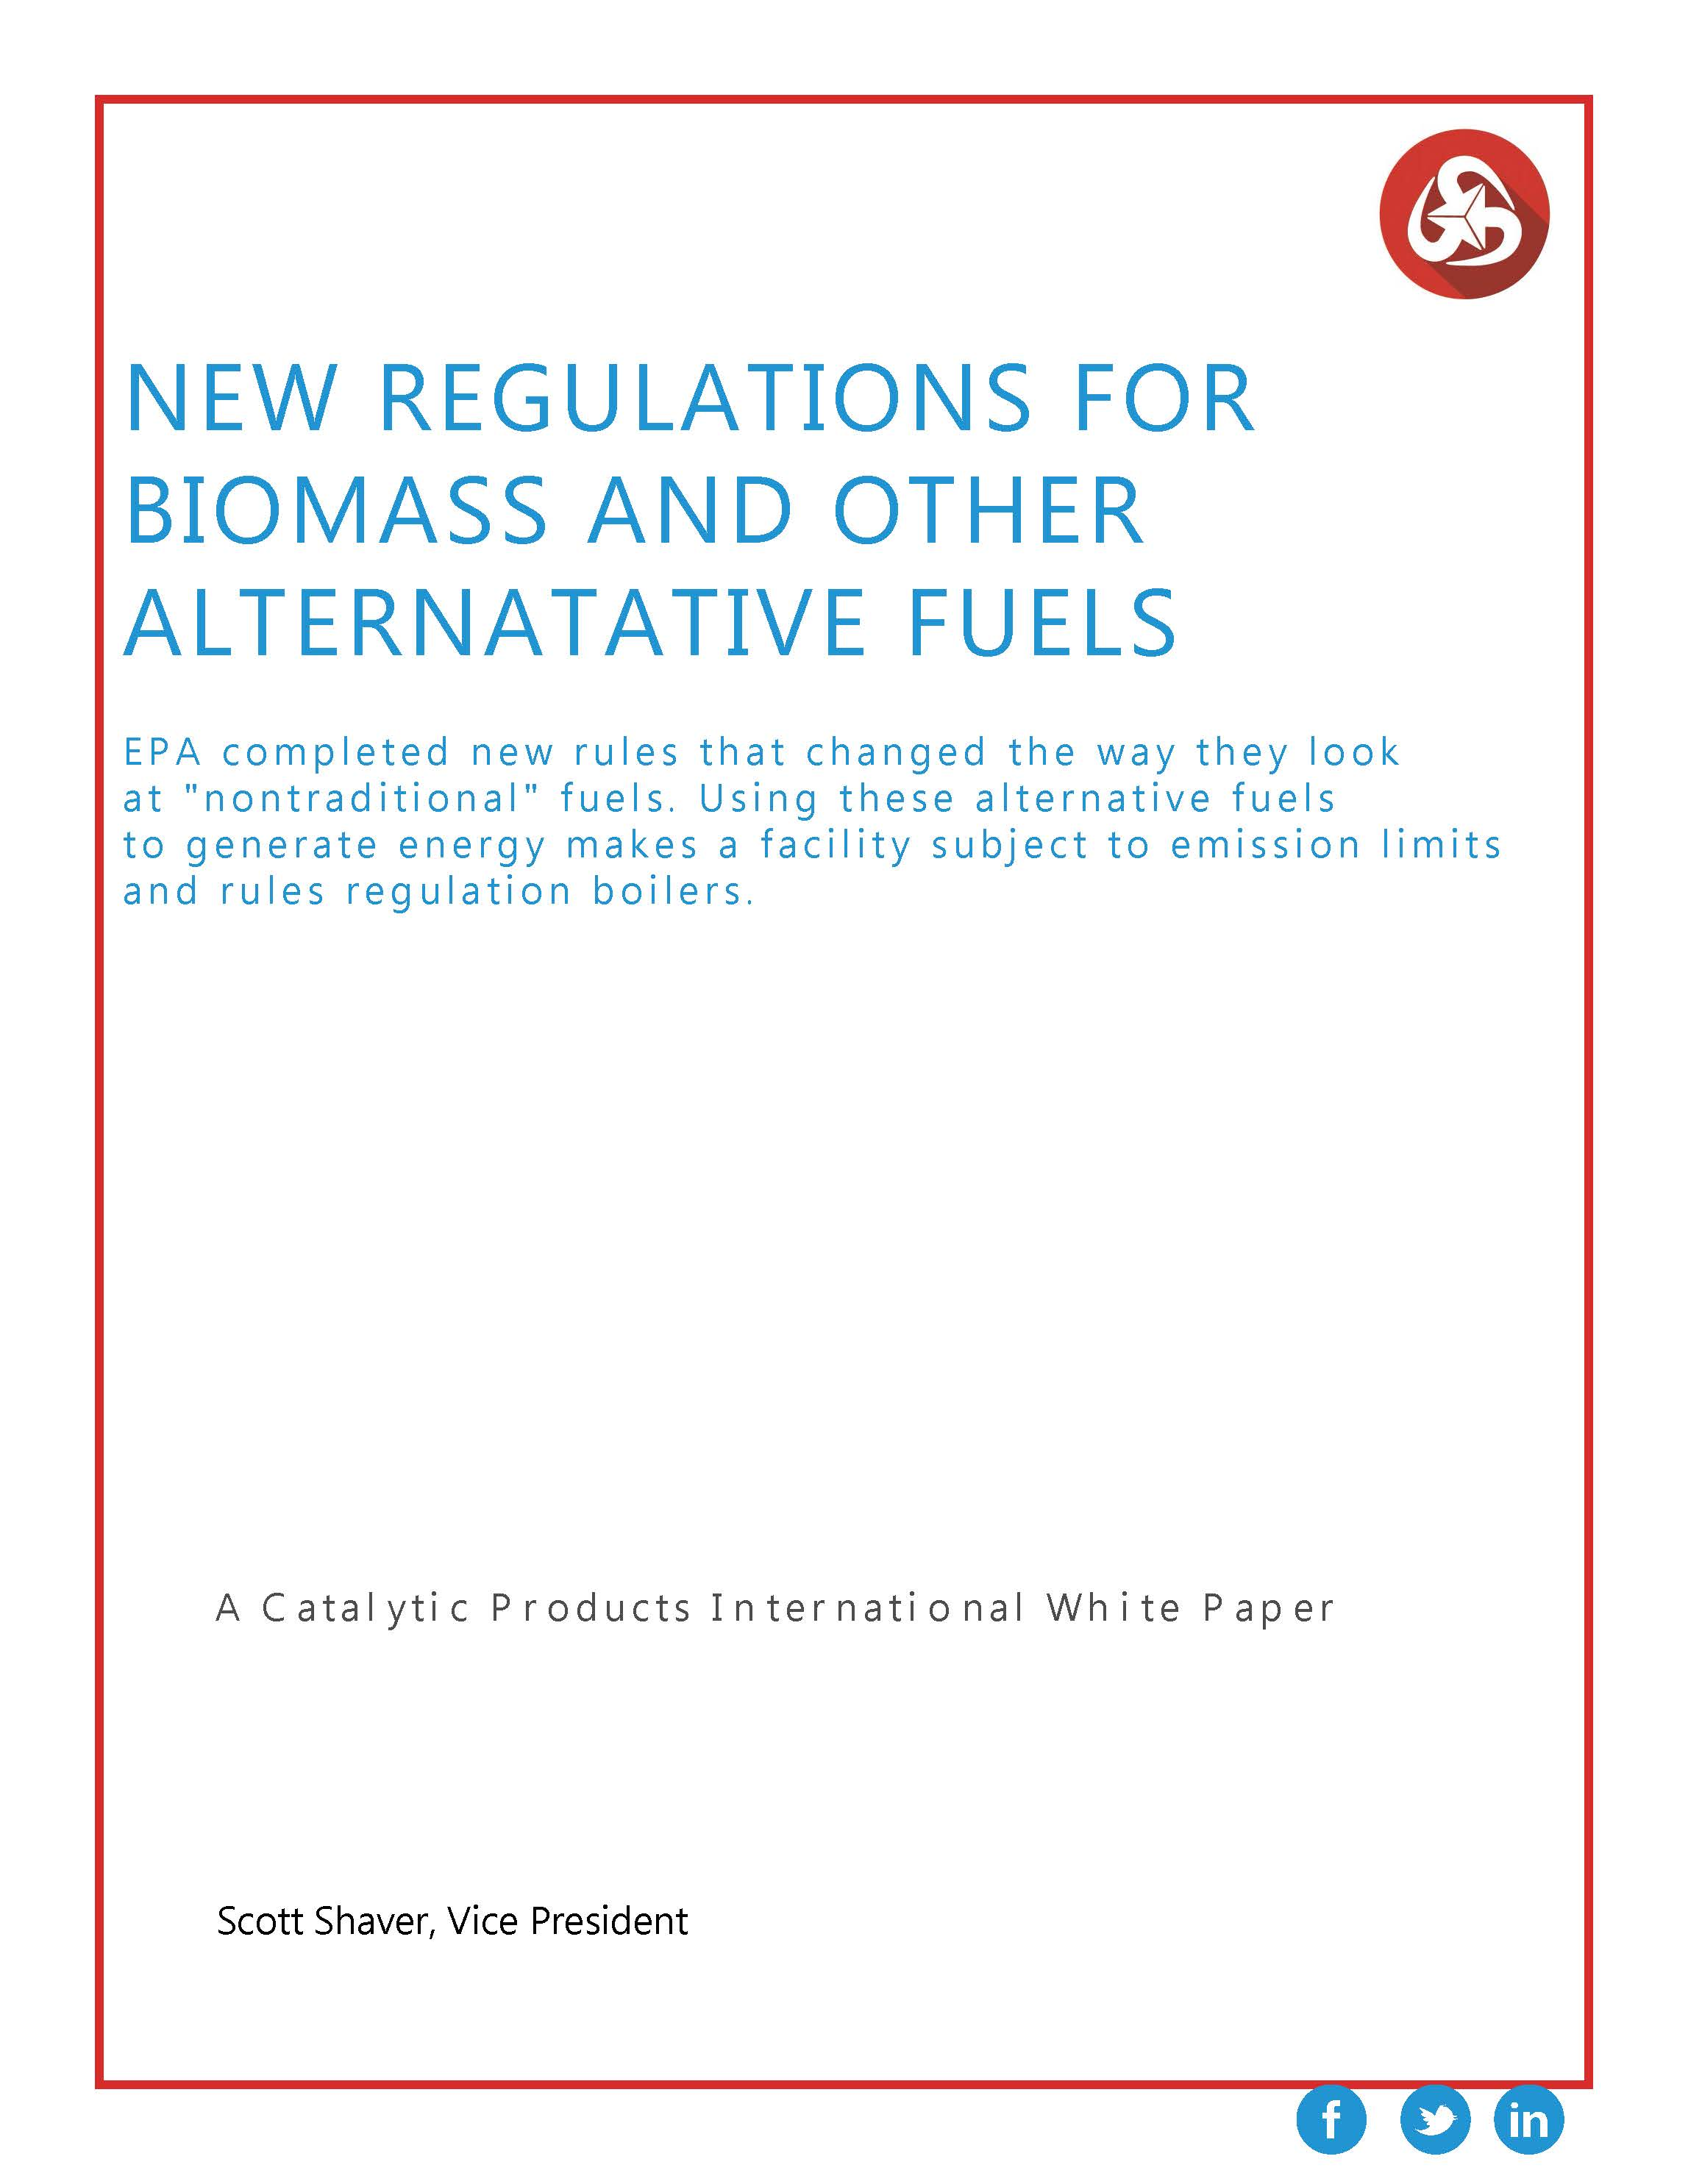 2014_New_Regulations_for_Biomass__Other_Alternative_Fuels